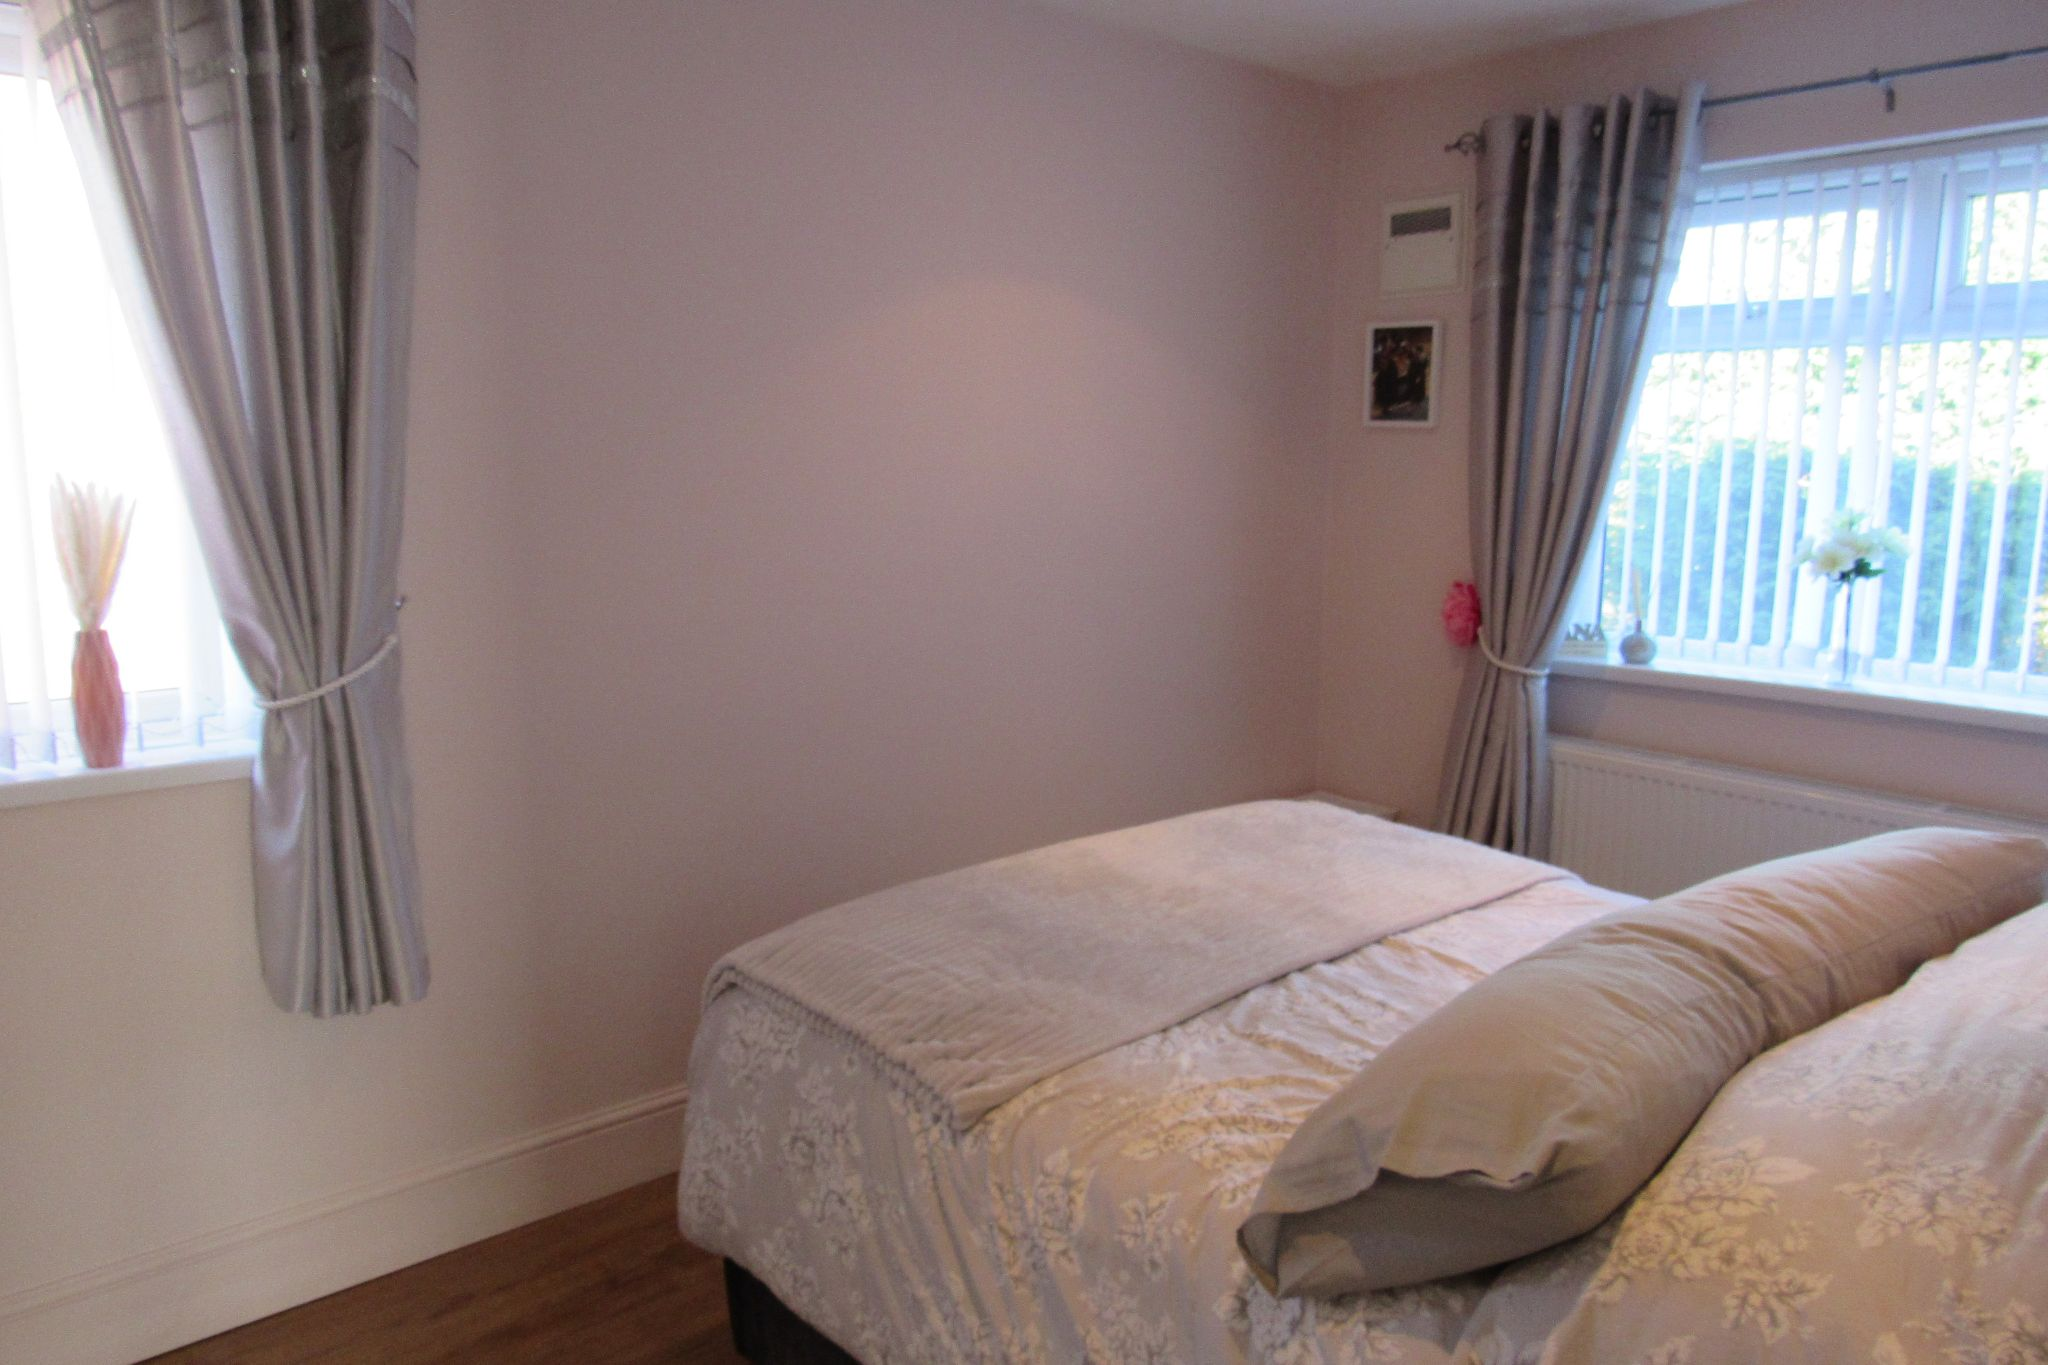 3 bedroom end terraced house SSTC in Manchester - Photograph 11.